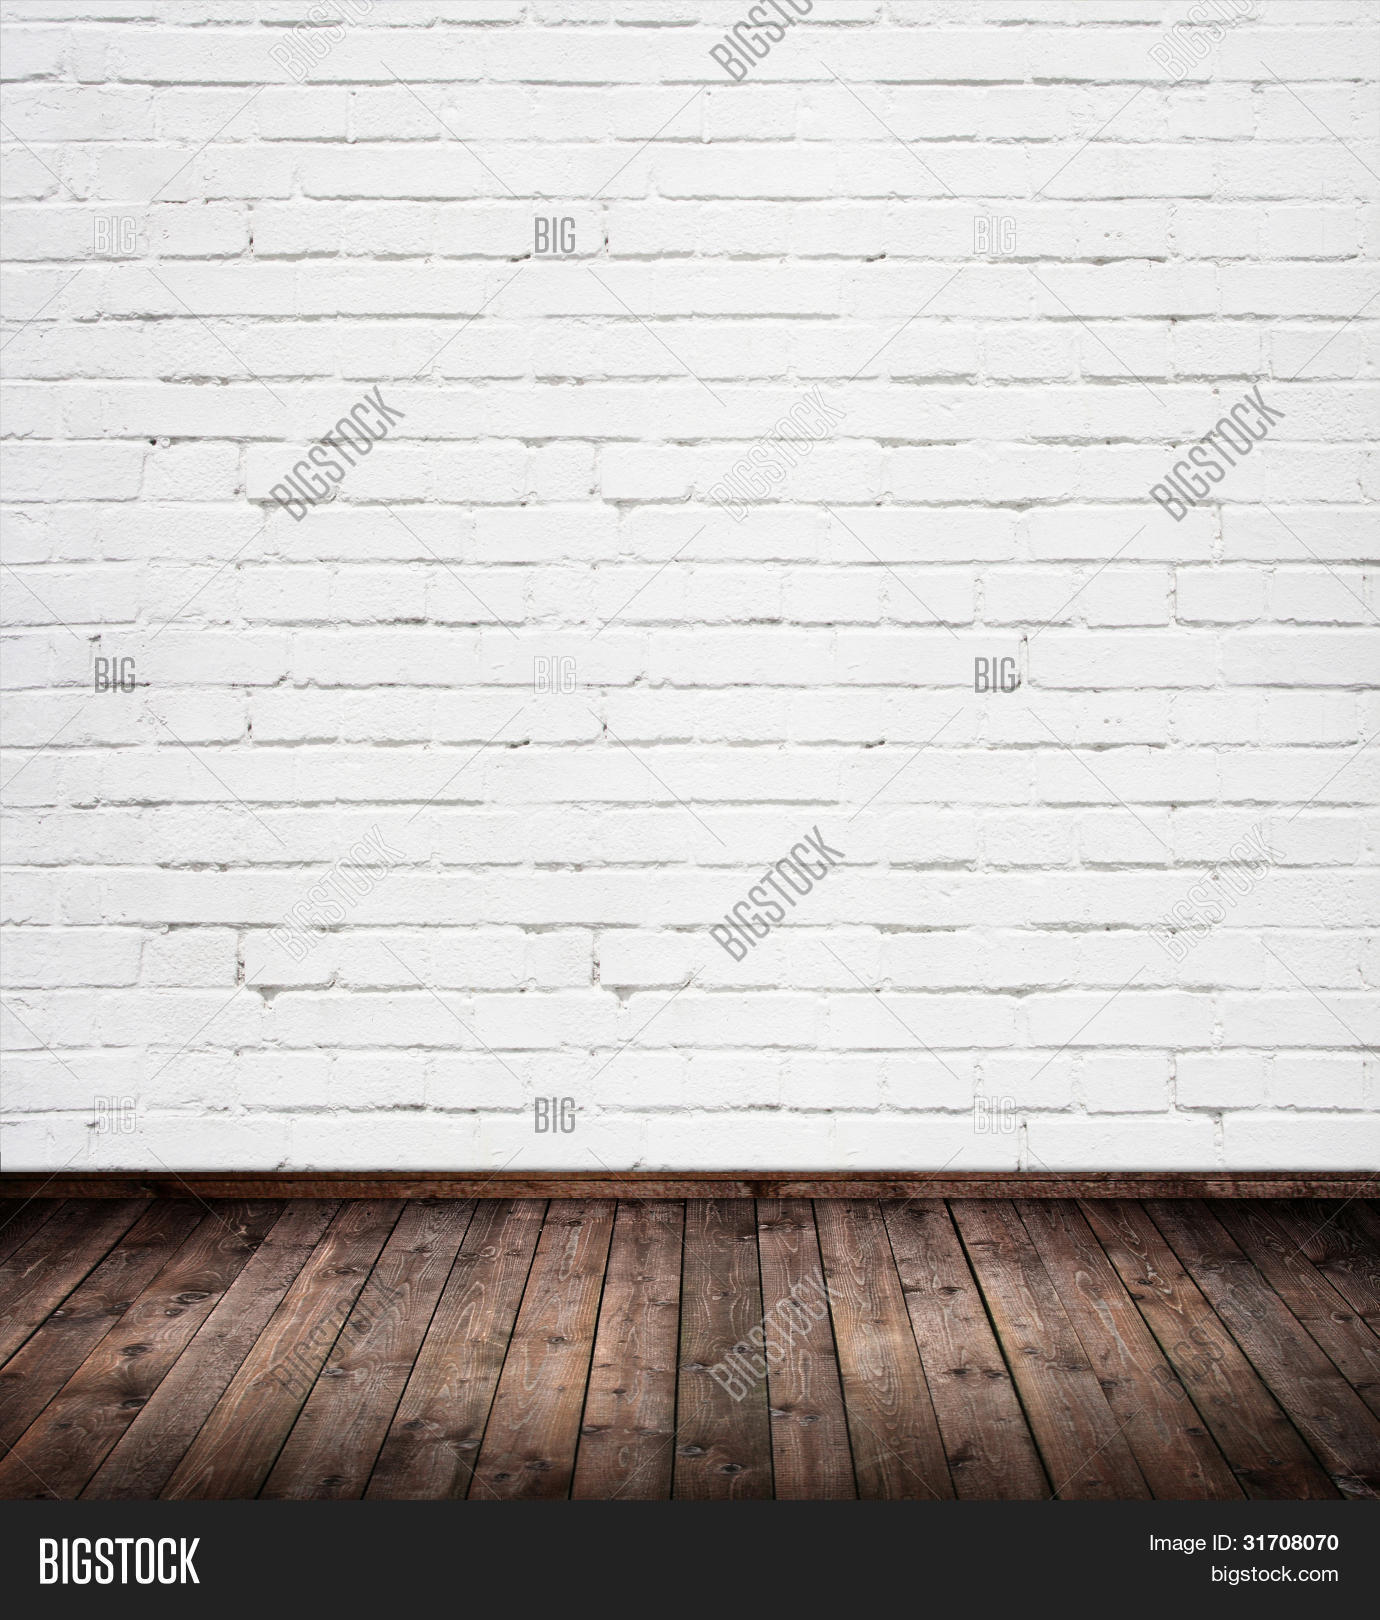 wall stock wood and hwjhww photo vintage floor interior brick room background white with